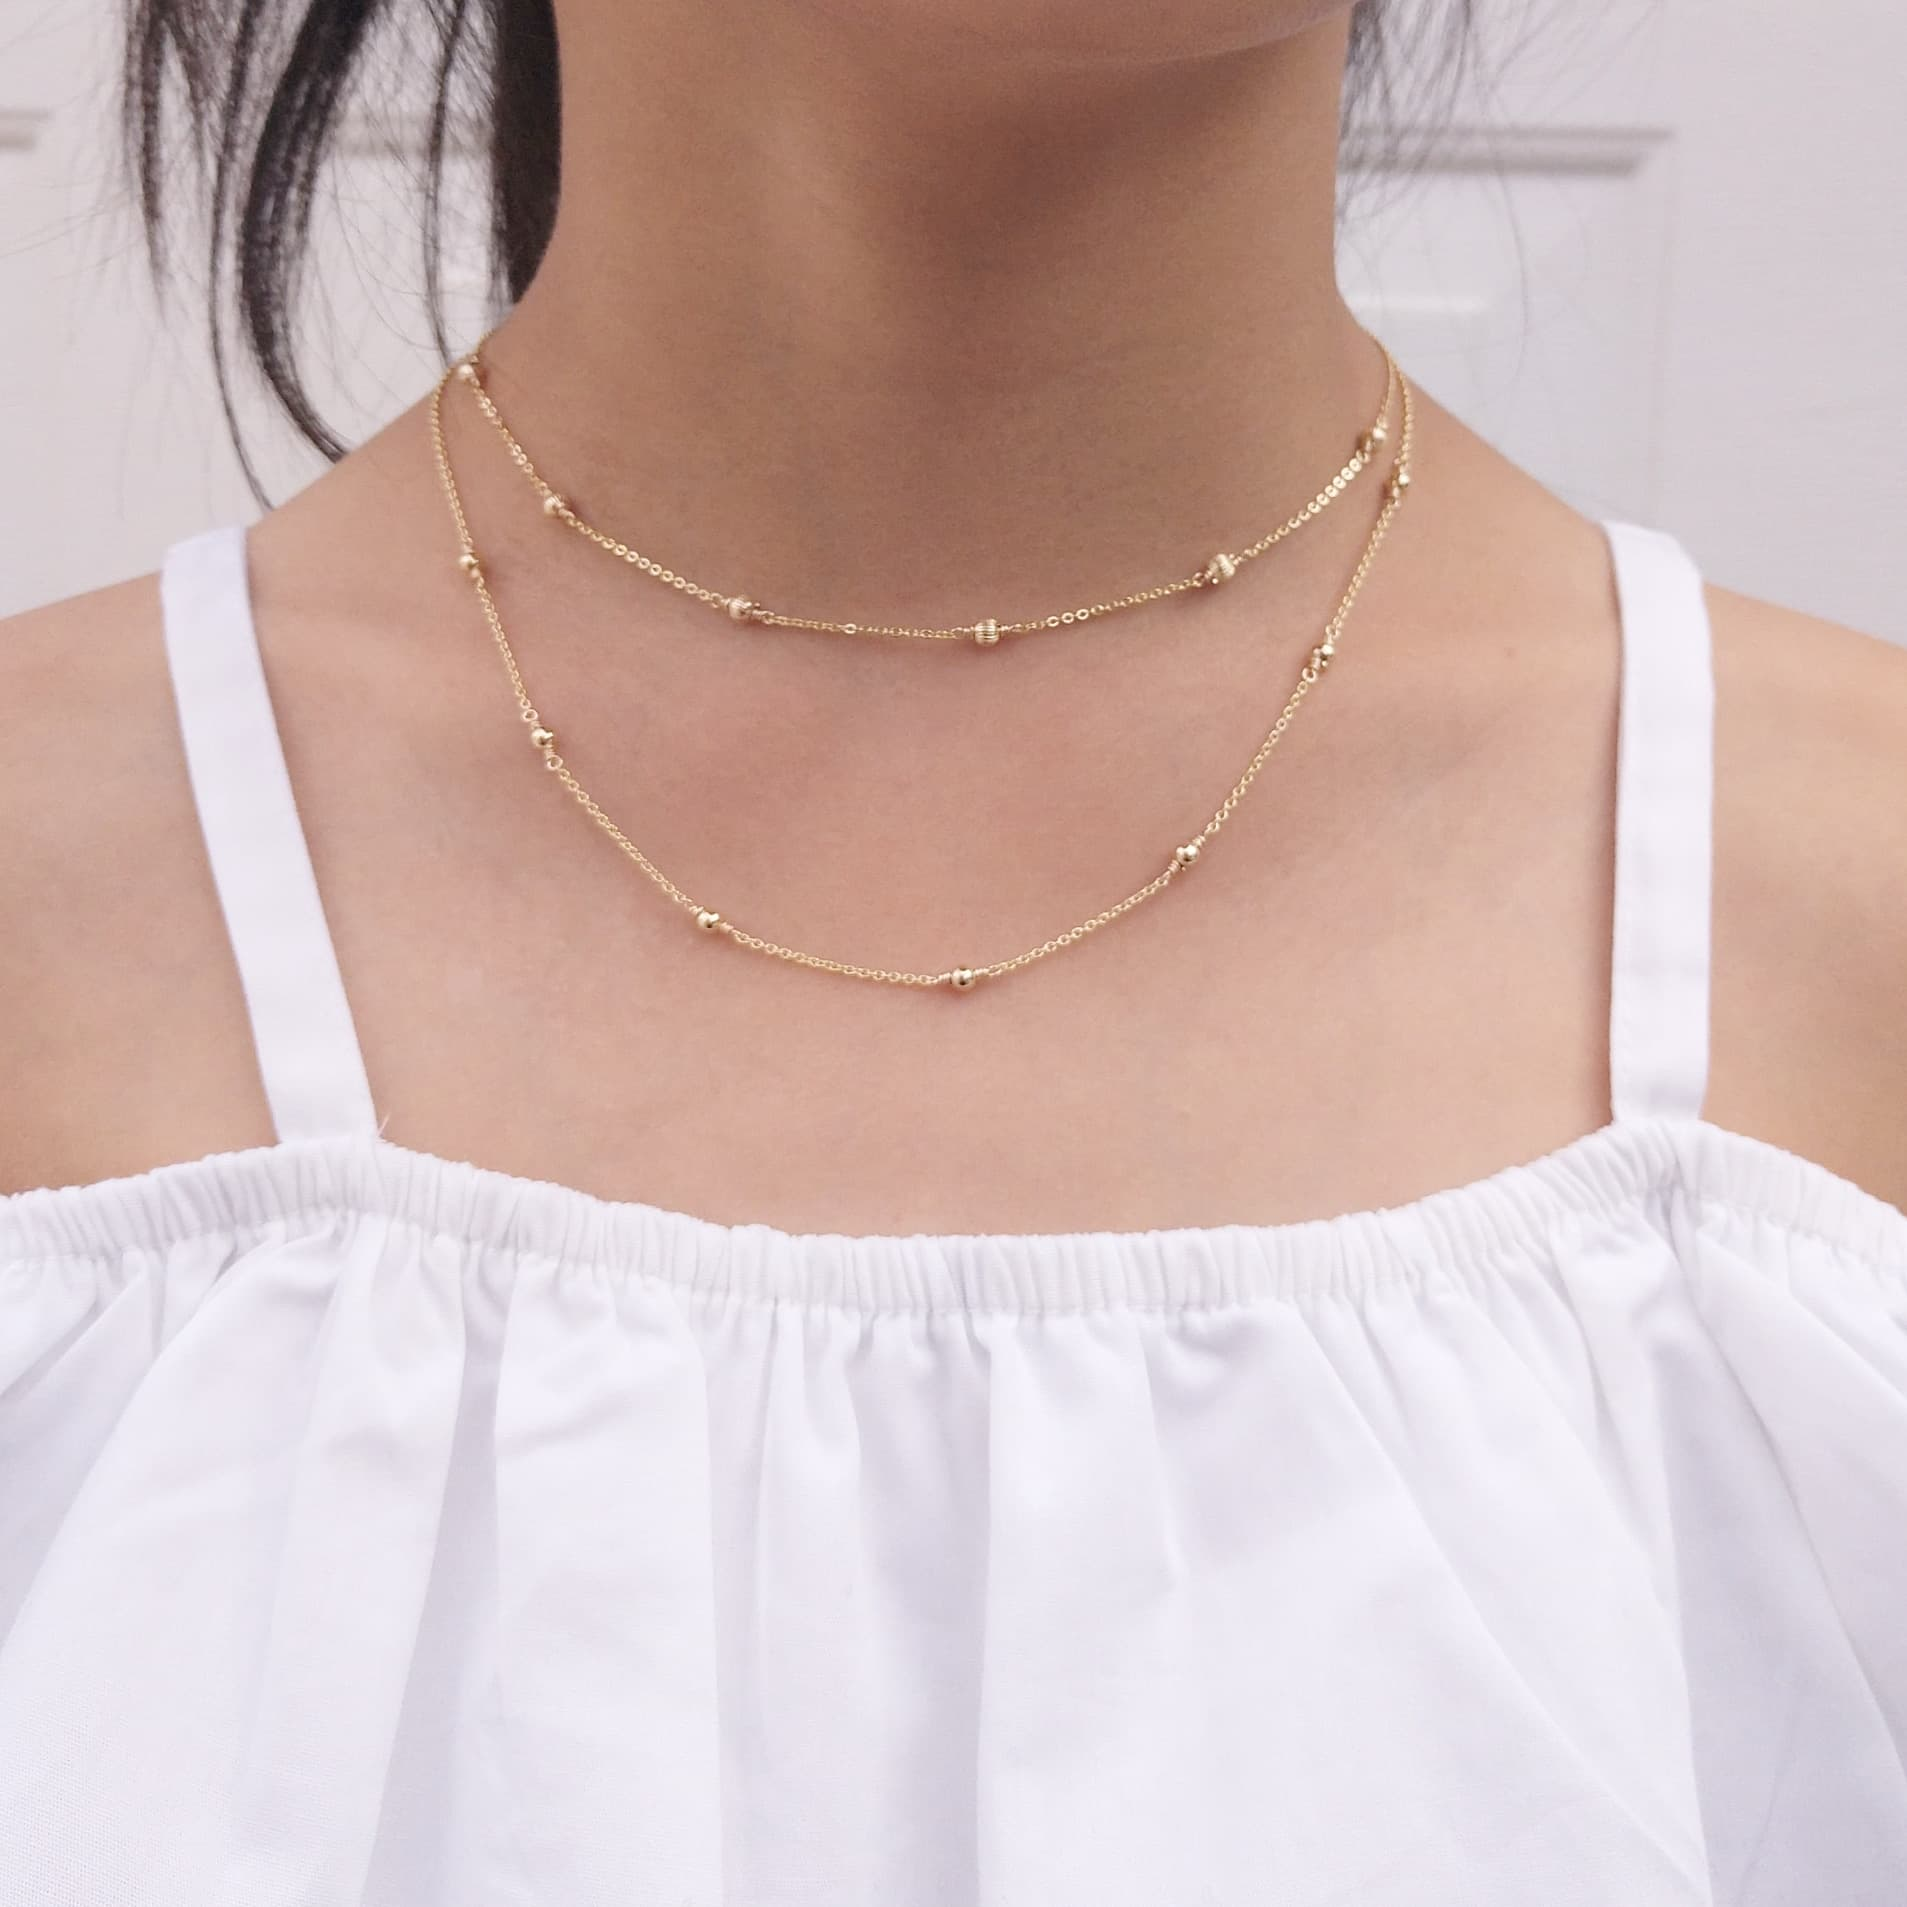 14k Gold Filled Dainty Gold Necklace Admirable Jewels